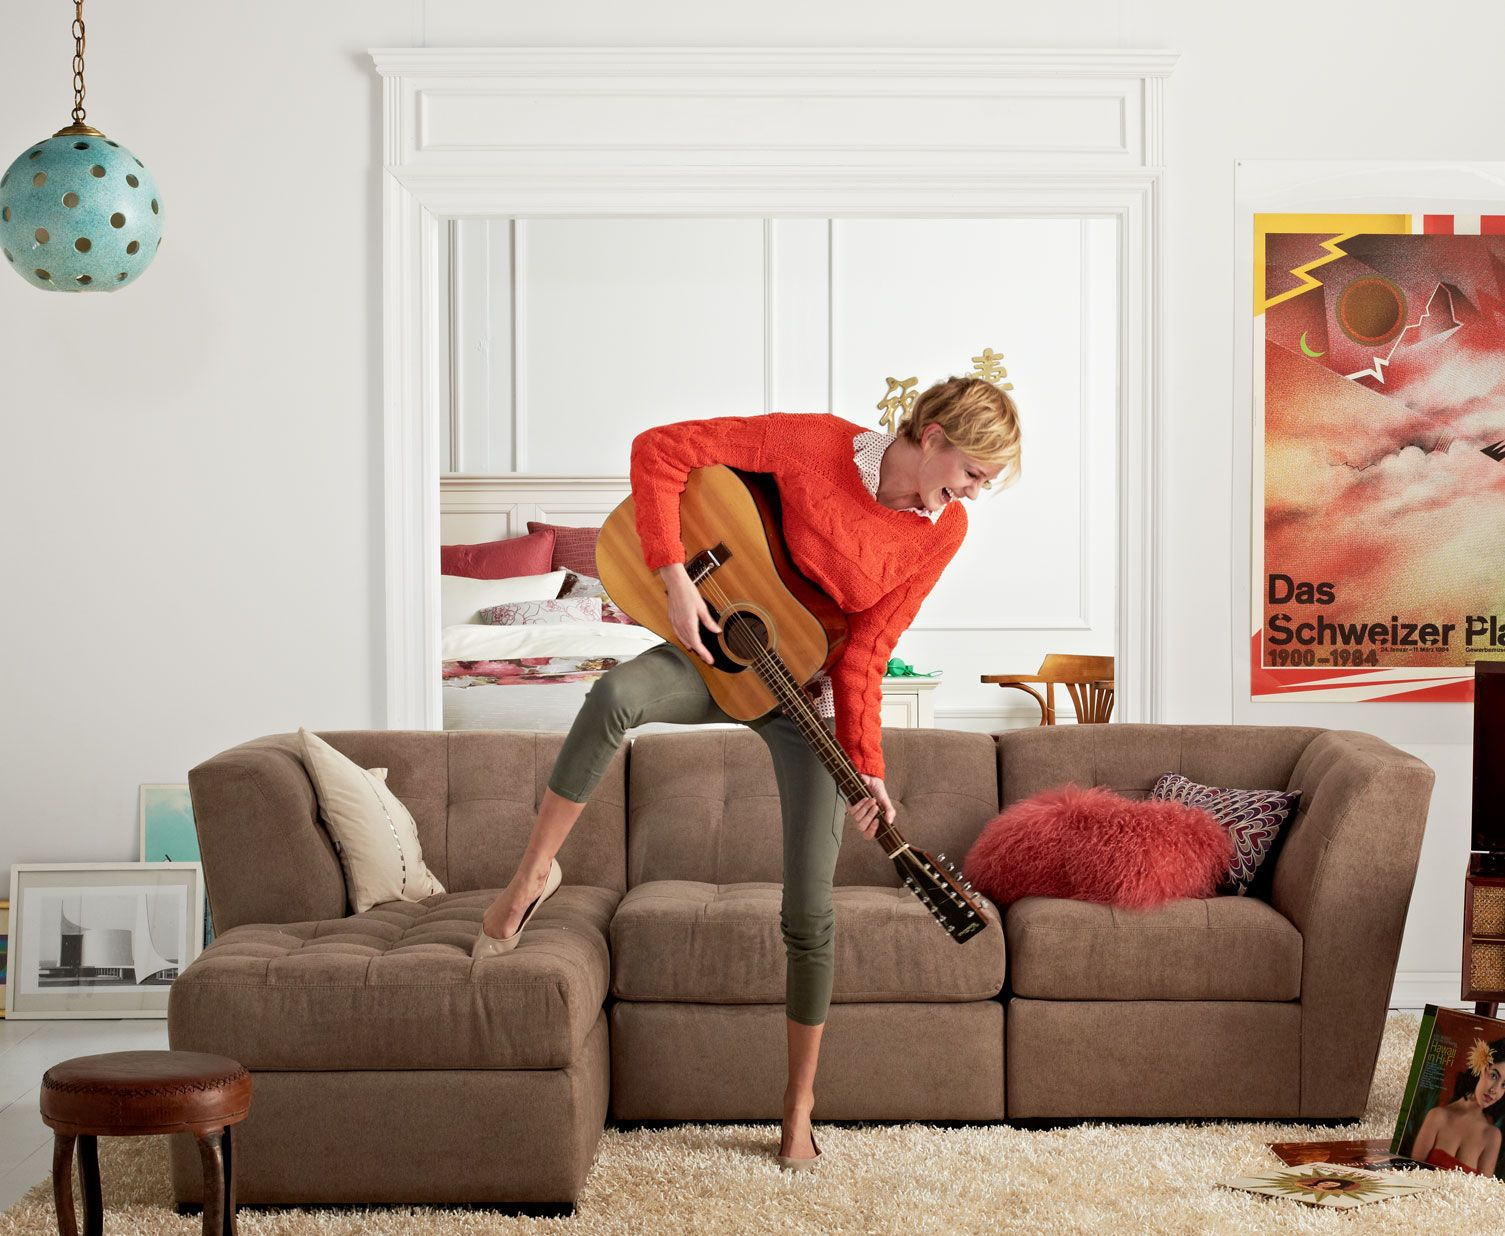 Macy's Home Store Campaign